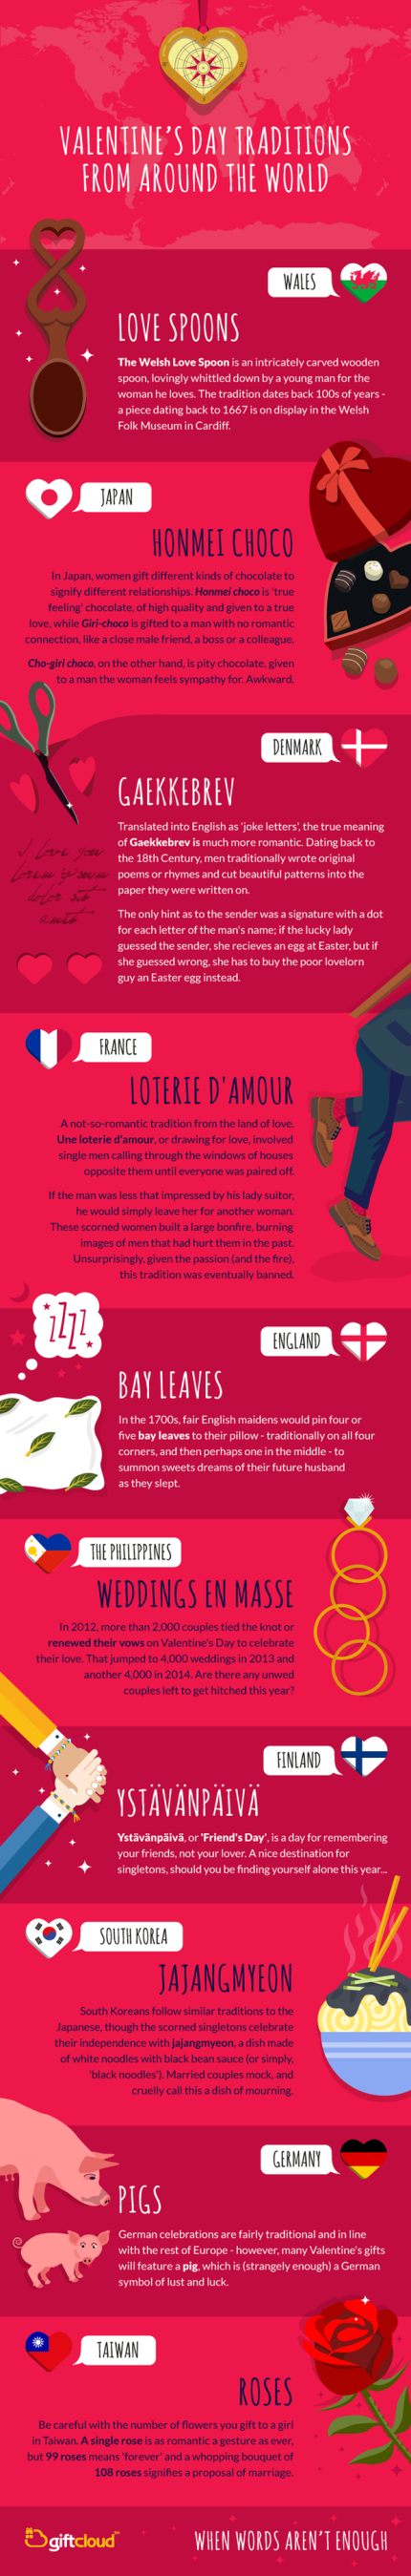 valentines-day-traditions-from-around-the-world-infographic